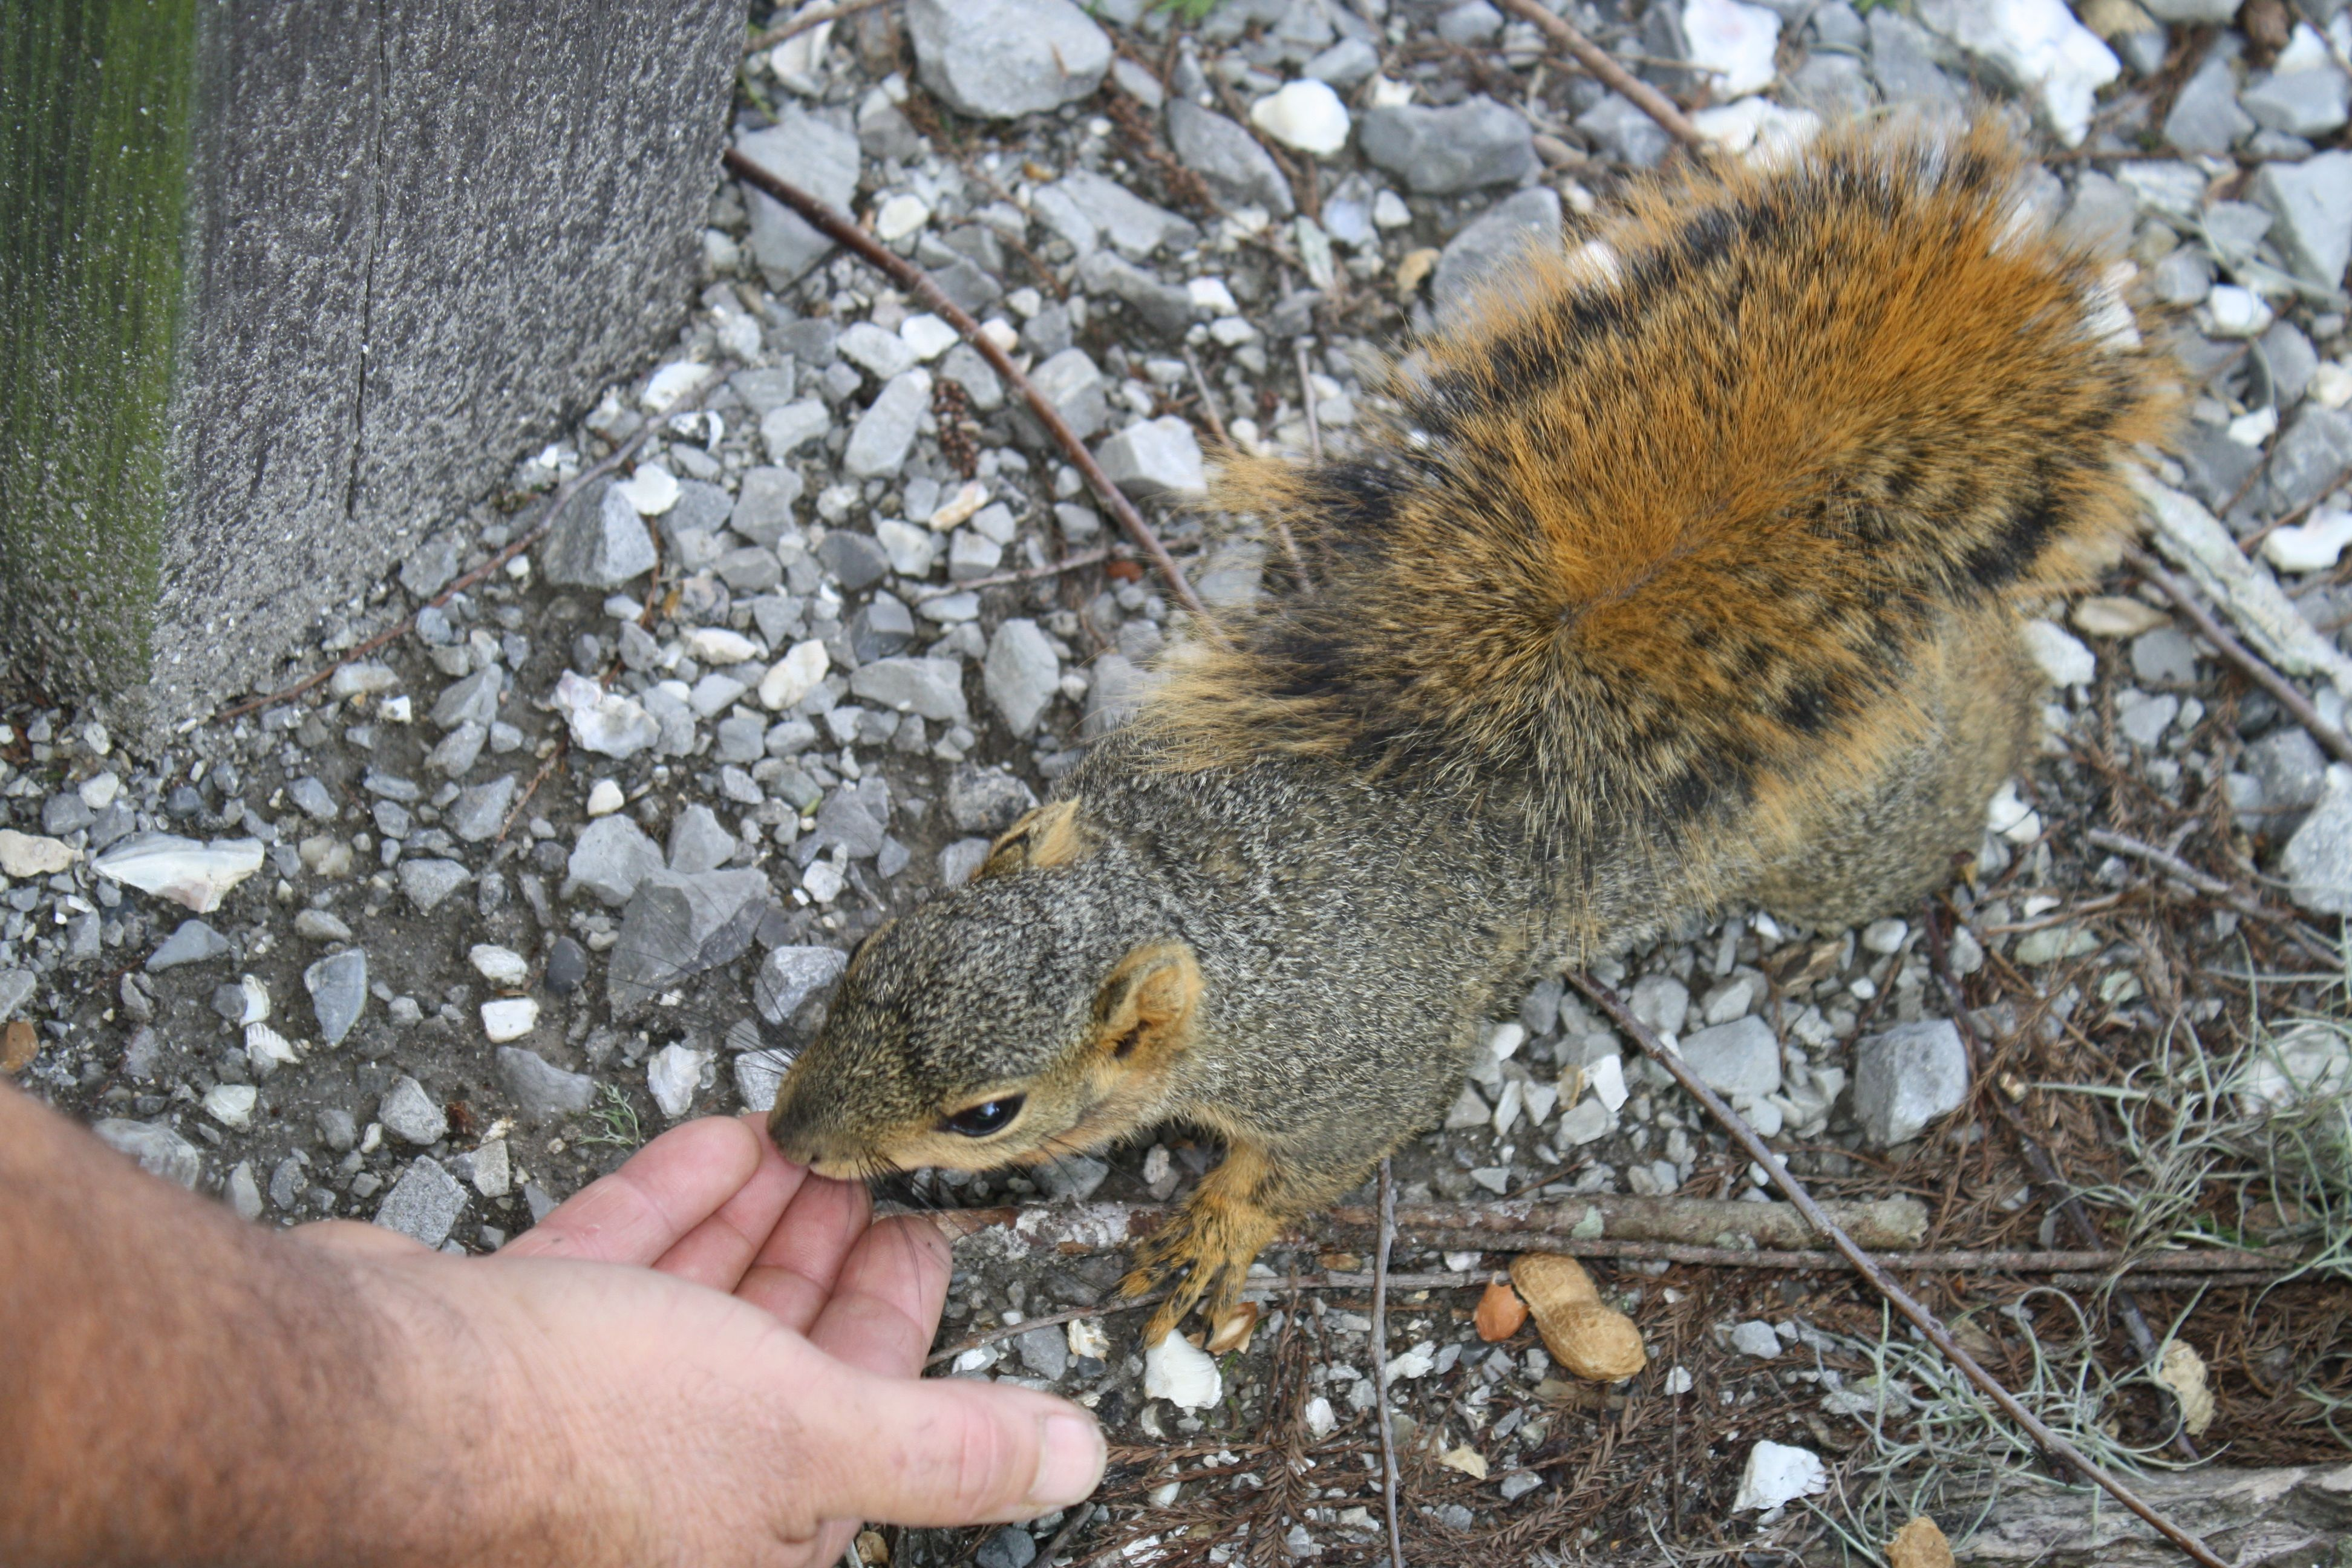 My husband feeding the squirrel this reminds me of my